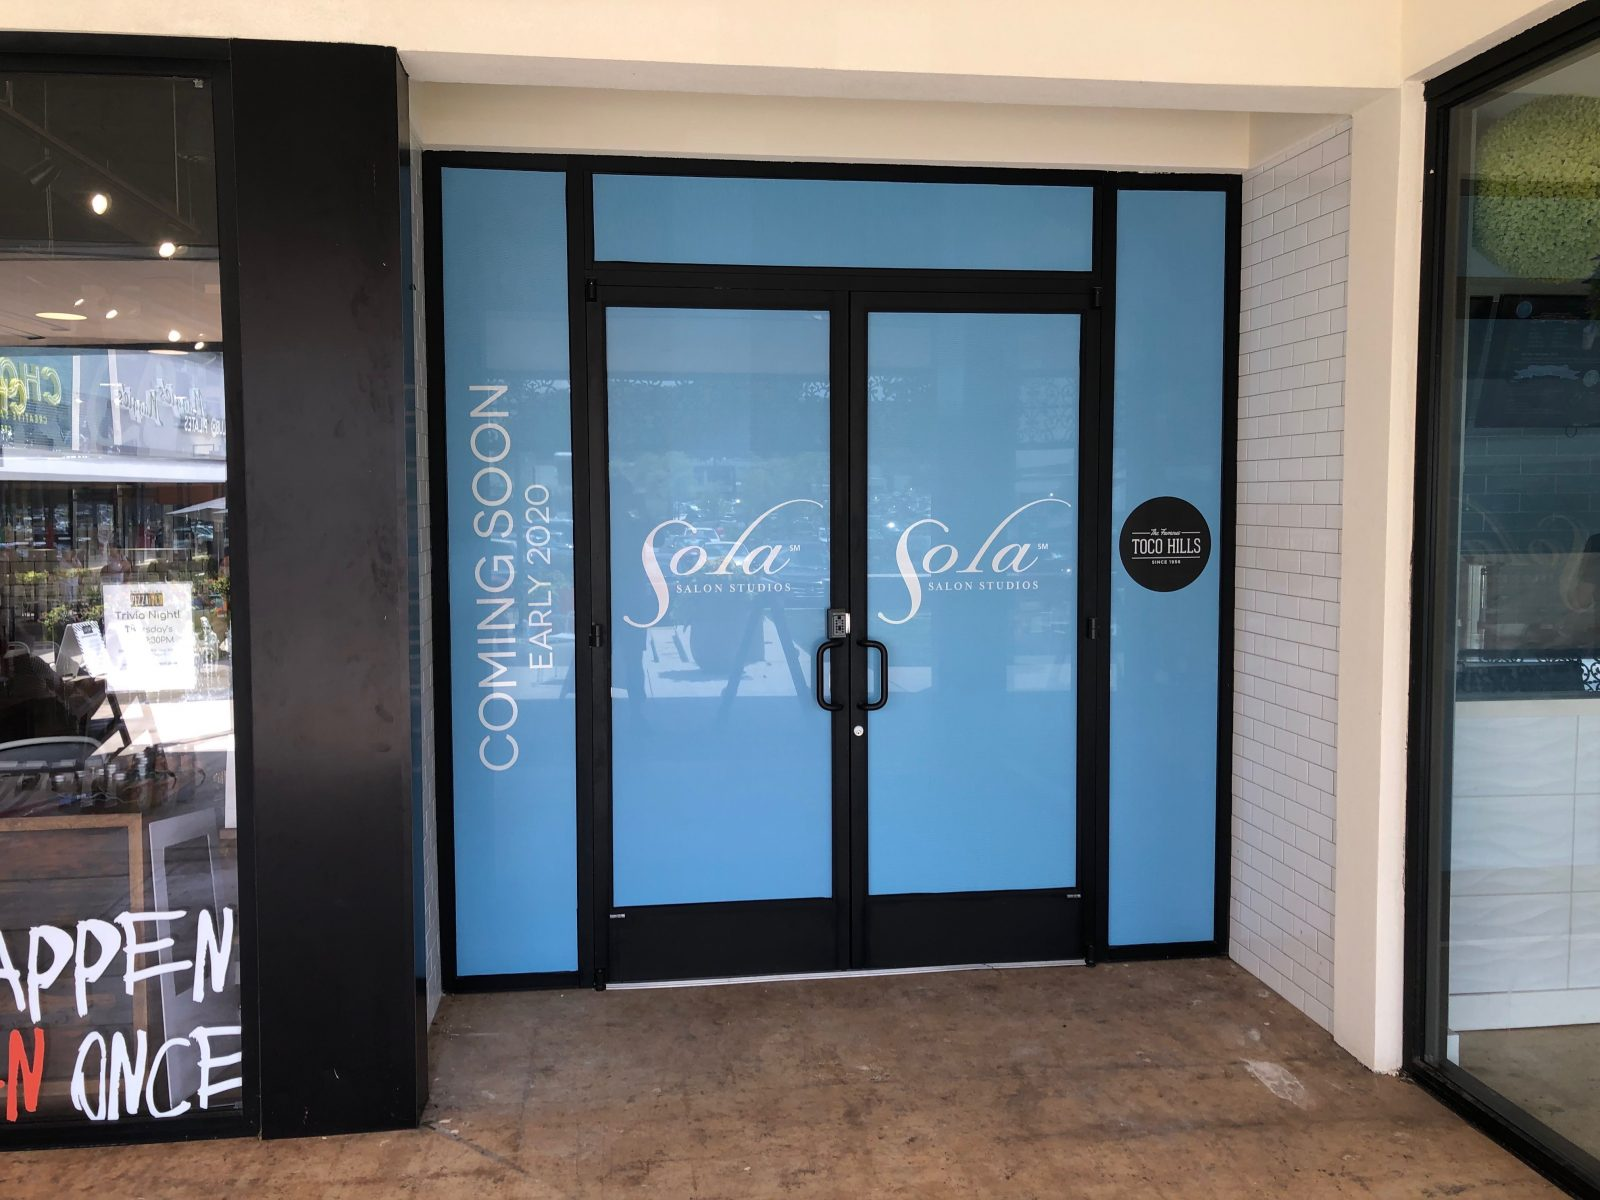 Sola Salon Studios - Coming Soon at Toco Hills[10]